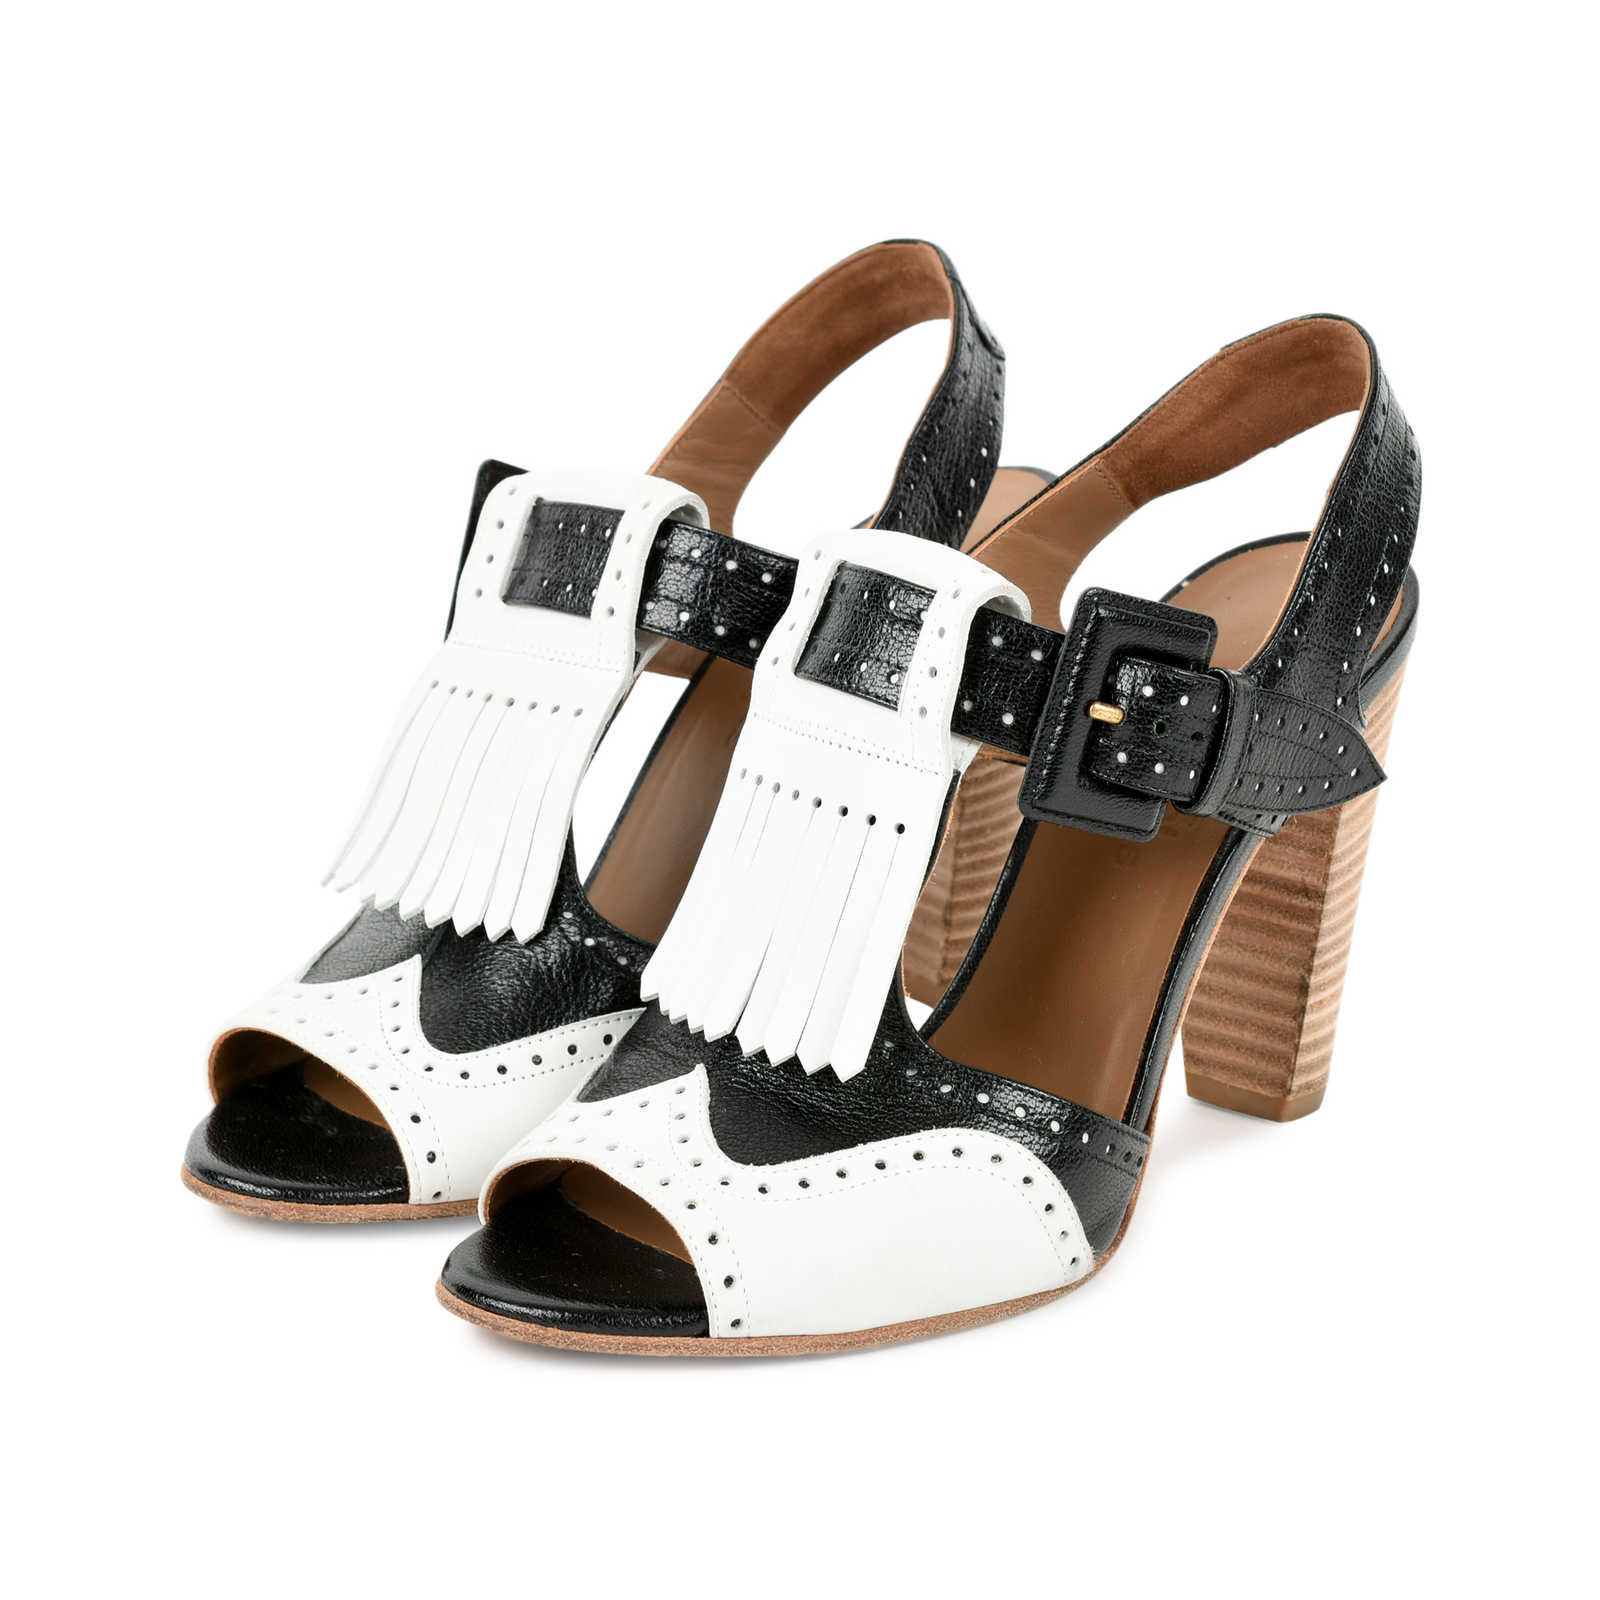 9db44a152a13 ... Authentic Second Hand Hermès Stacked Heel Sandals (PSS-235-00094) -  Thumbnail ...